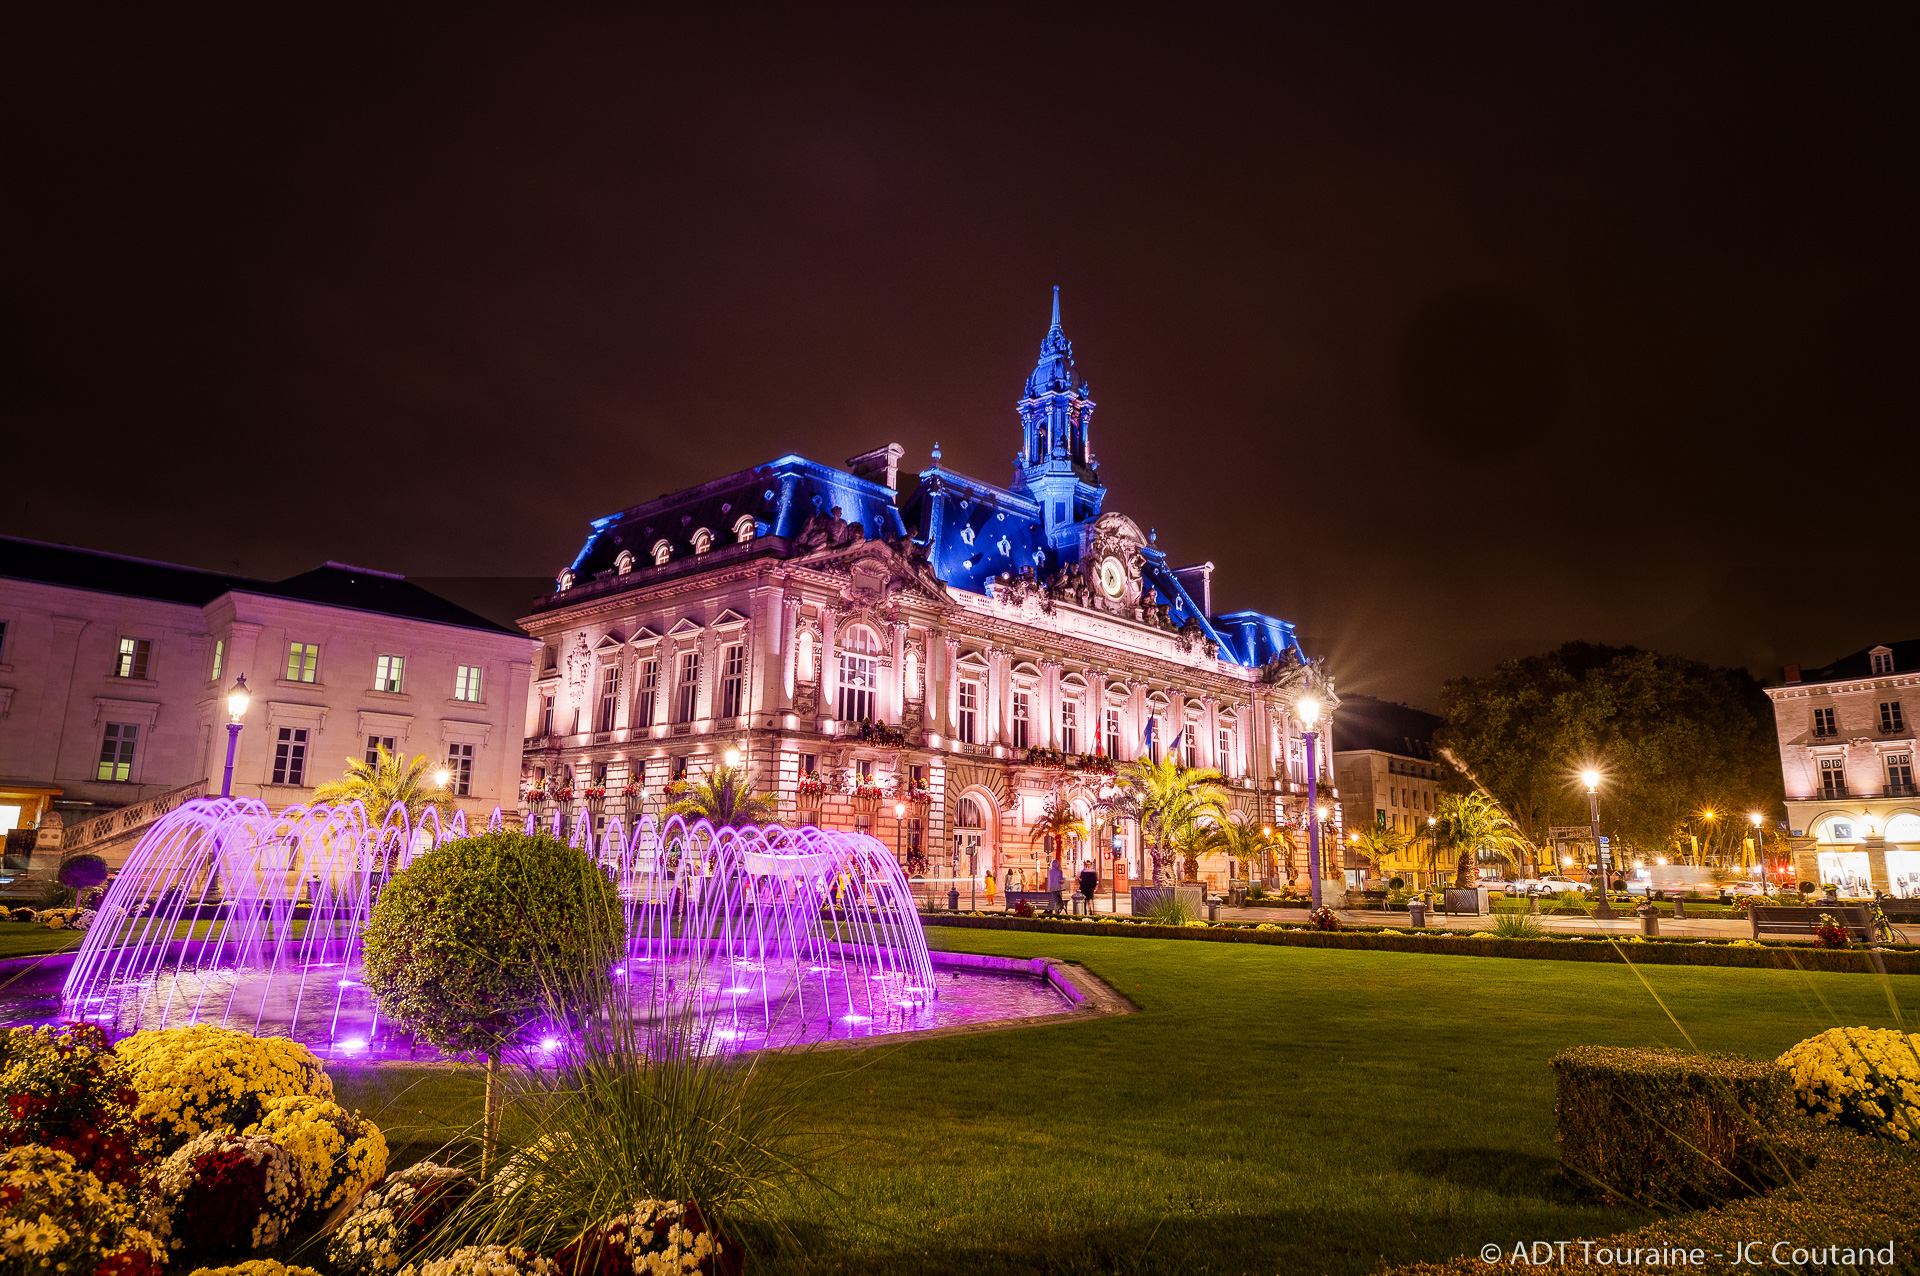 The illuminated walking experience in the city of Tours   Loire Valley